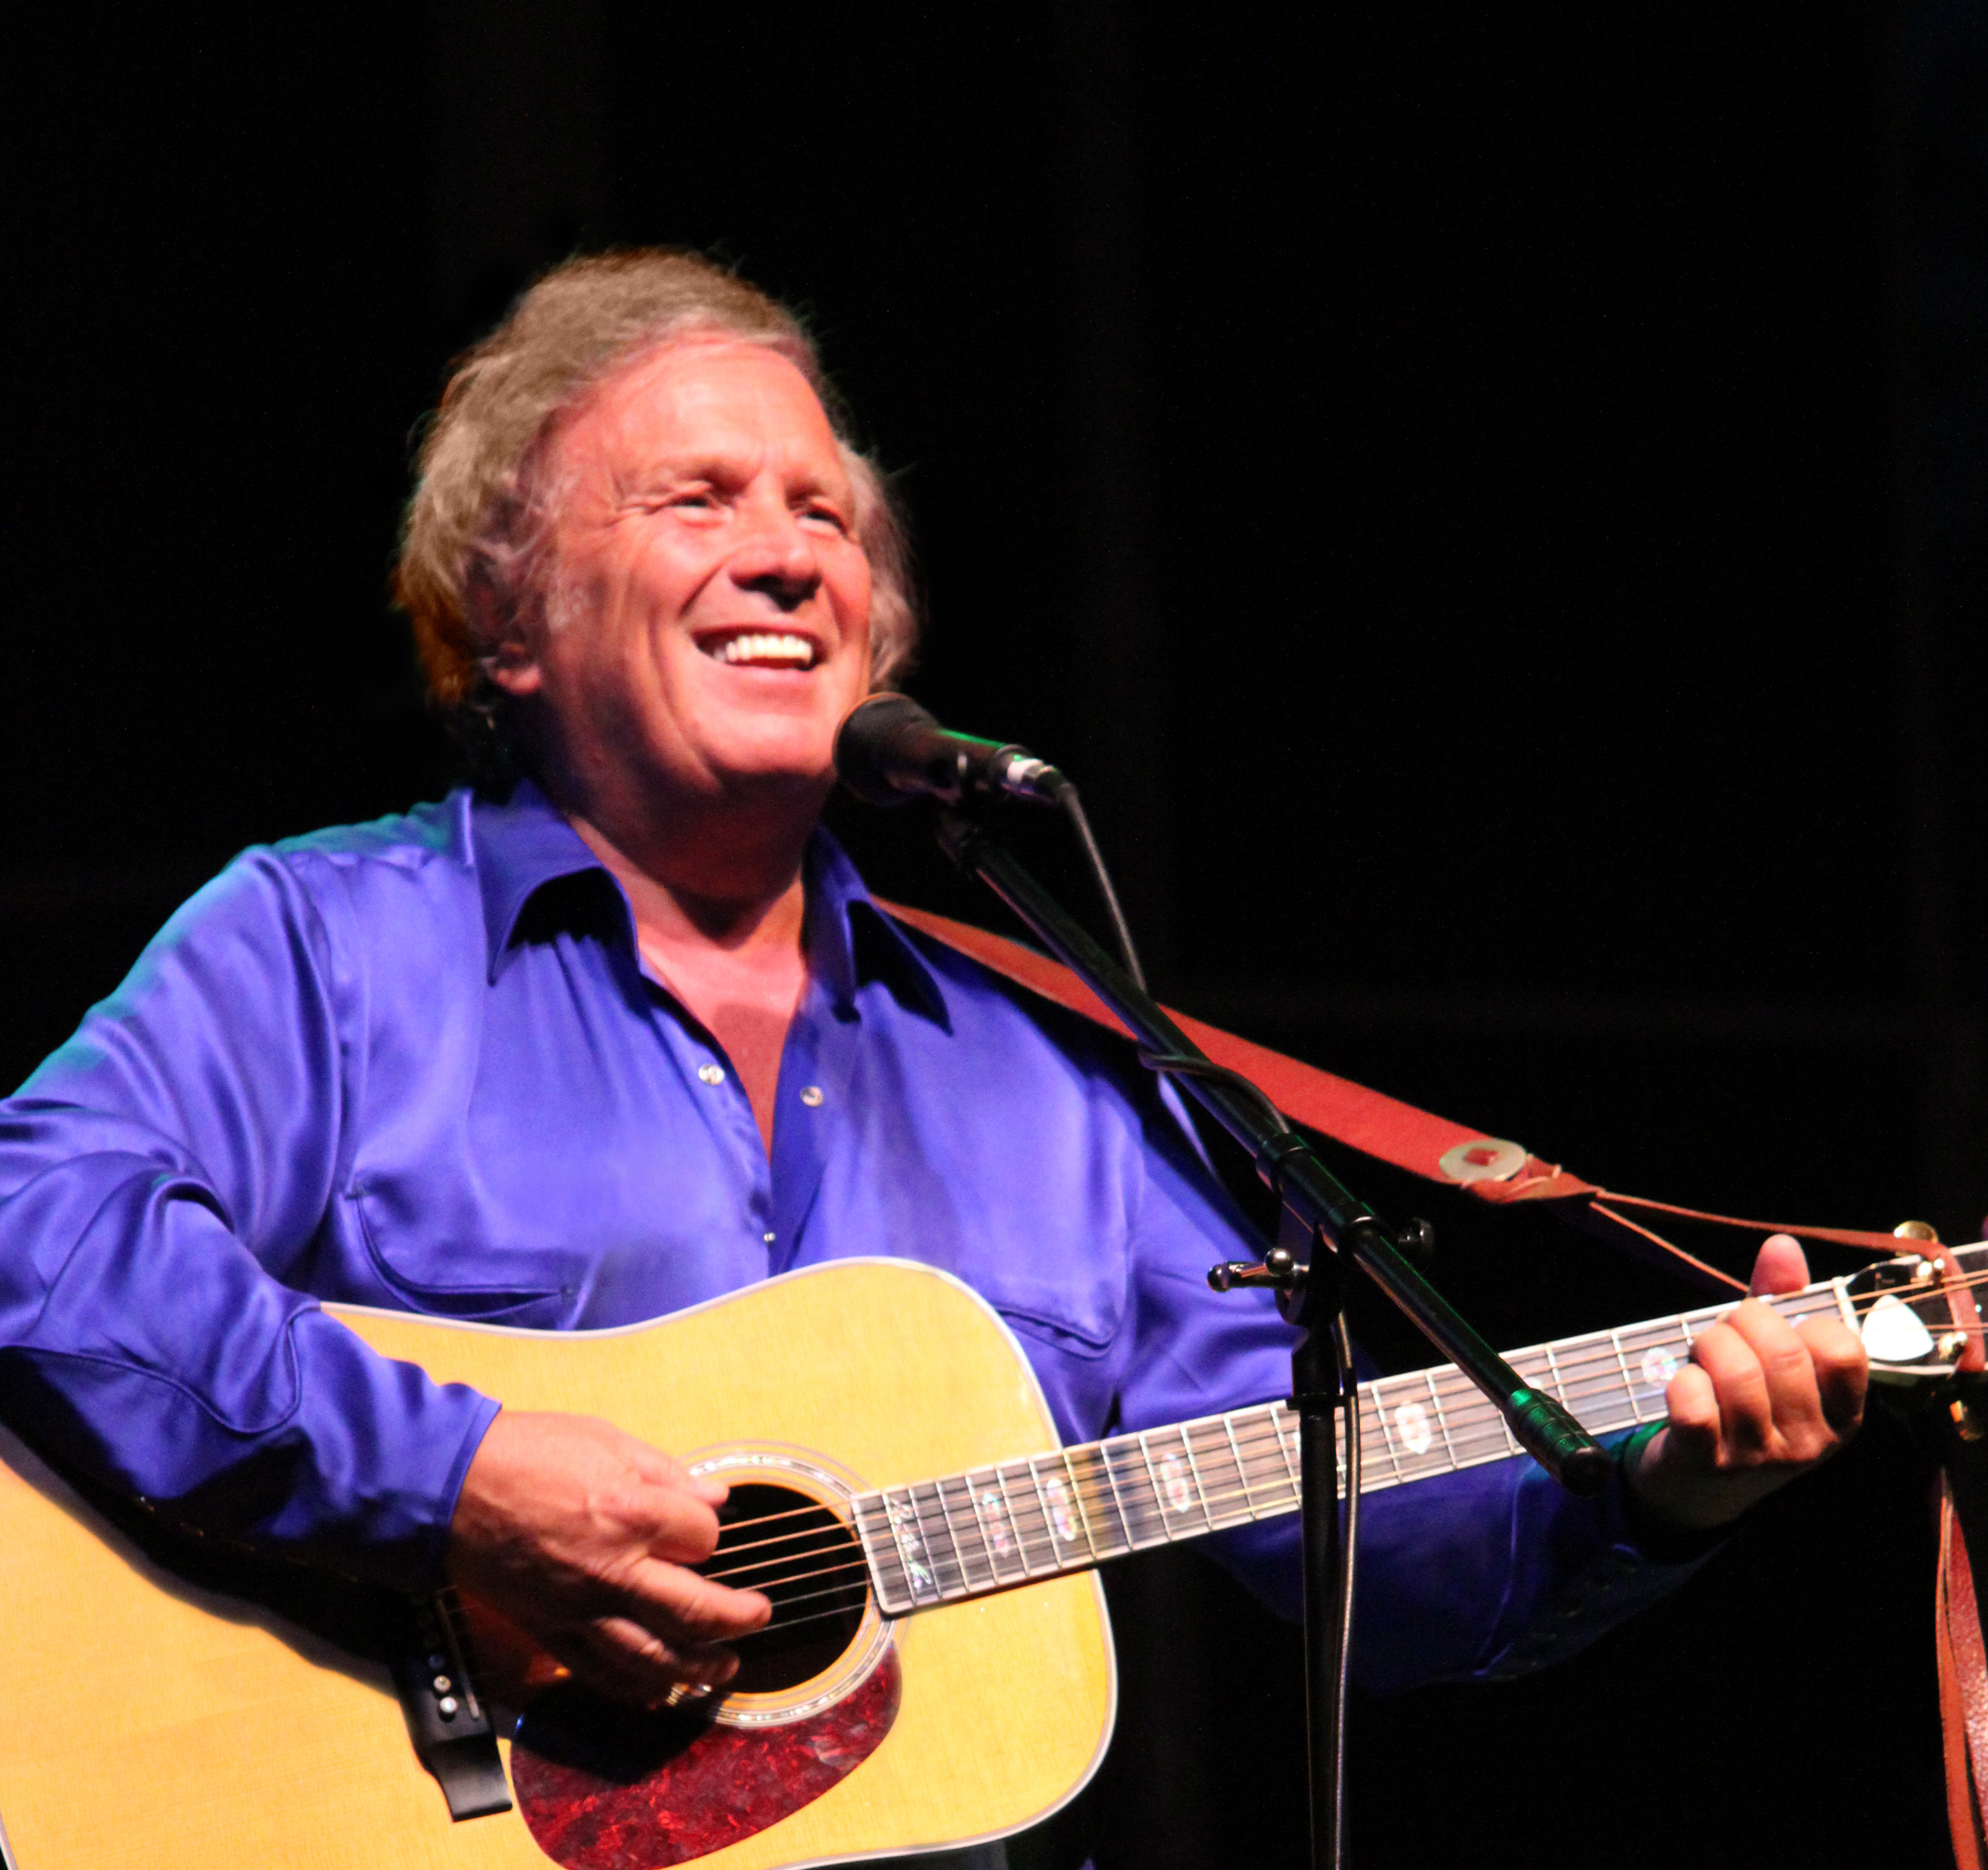 Don McLean A\announces return to Ireland and United Kingdom in 2018